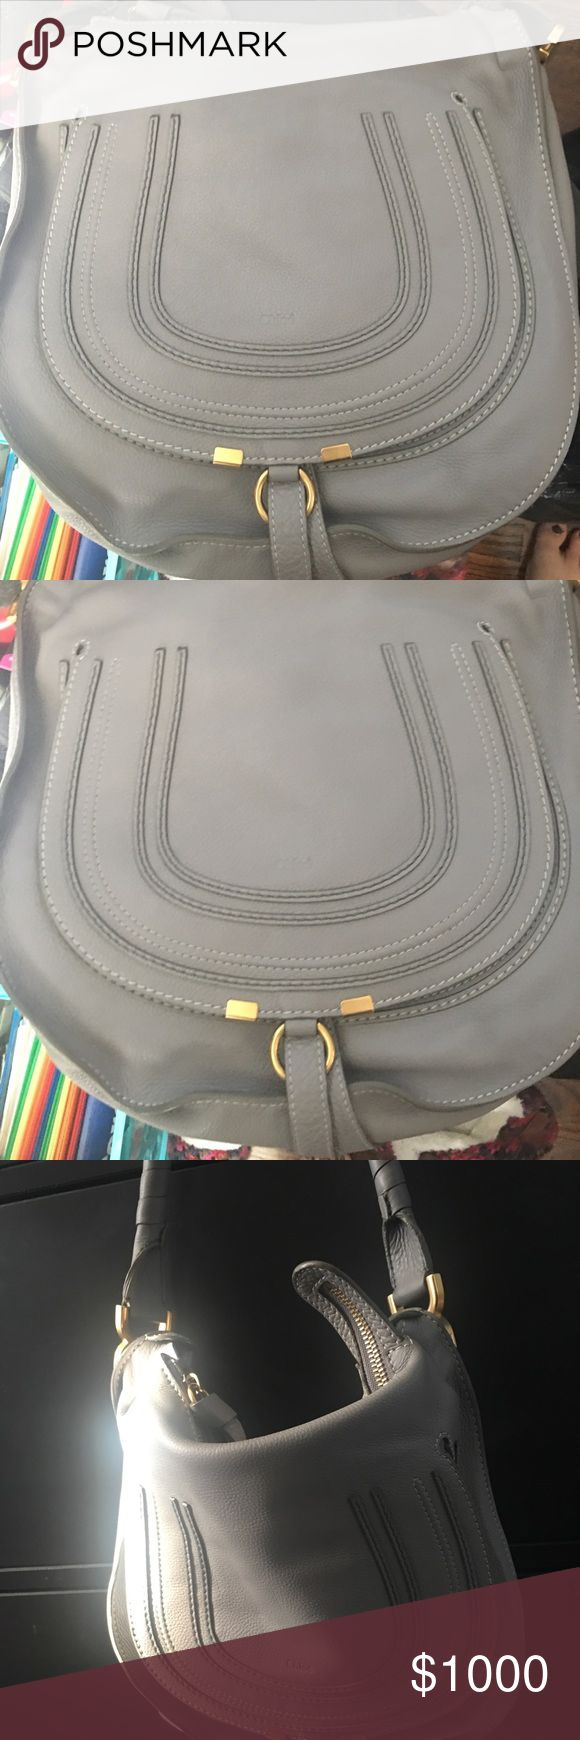 Chloe handbag Only used a few times, light grey color, gorgeous condition. Pet free, smoke free home, duster included Chloe Bags Shoulder Bags